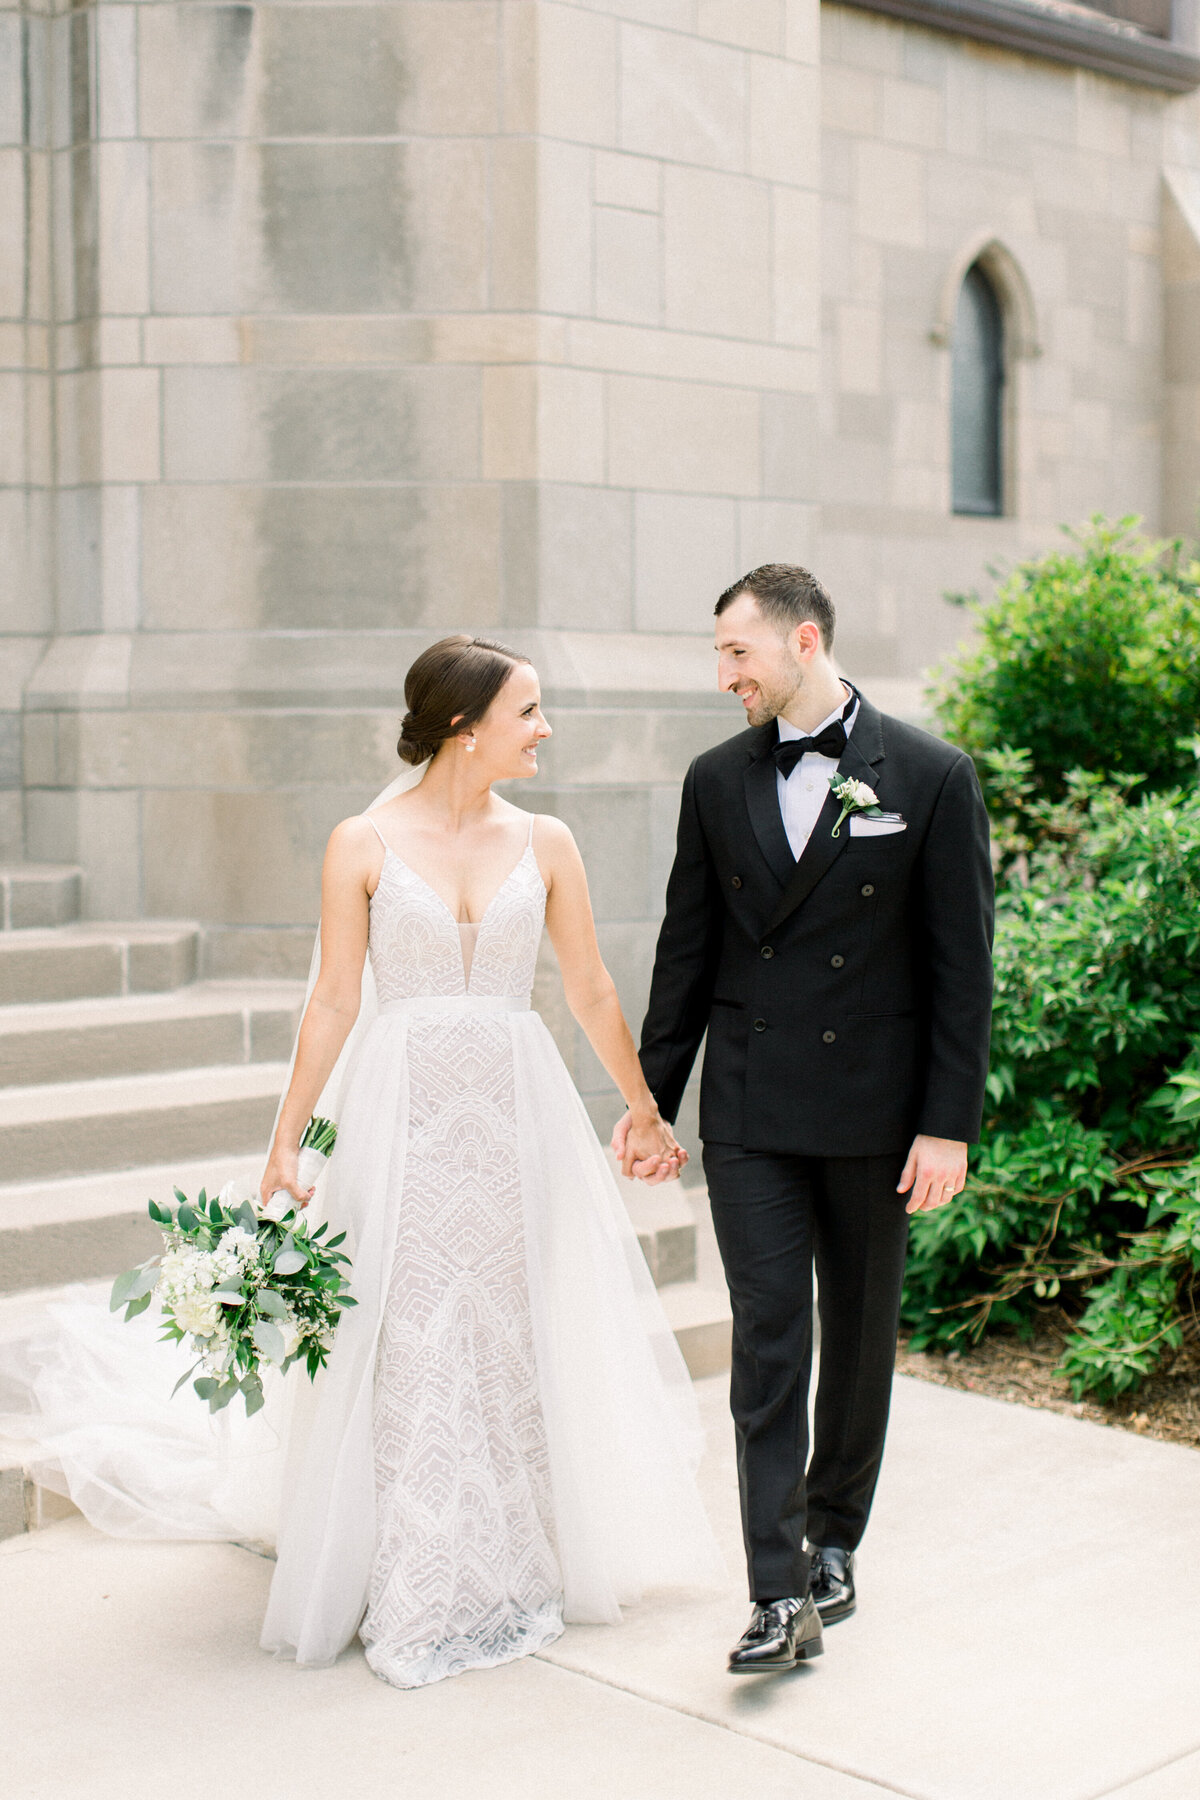 Minnesota wedding photographer, Minneapolis wedding photographer, Minnesota luxury photographer, minnesota light and airy photographer, minnesota light and airy wedding photographer, Trish ALlison Photography